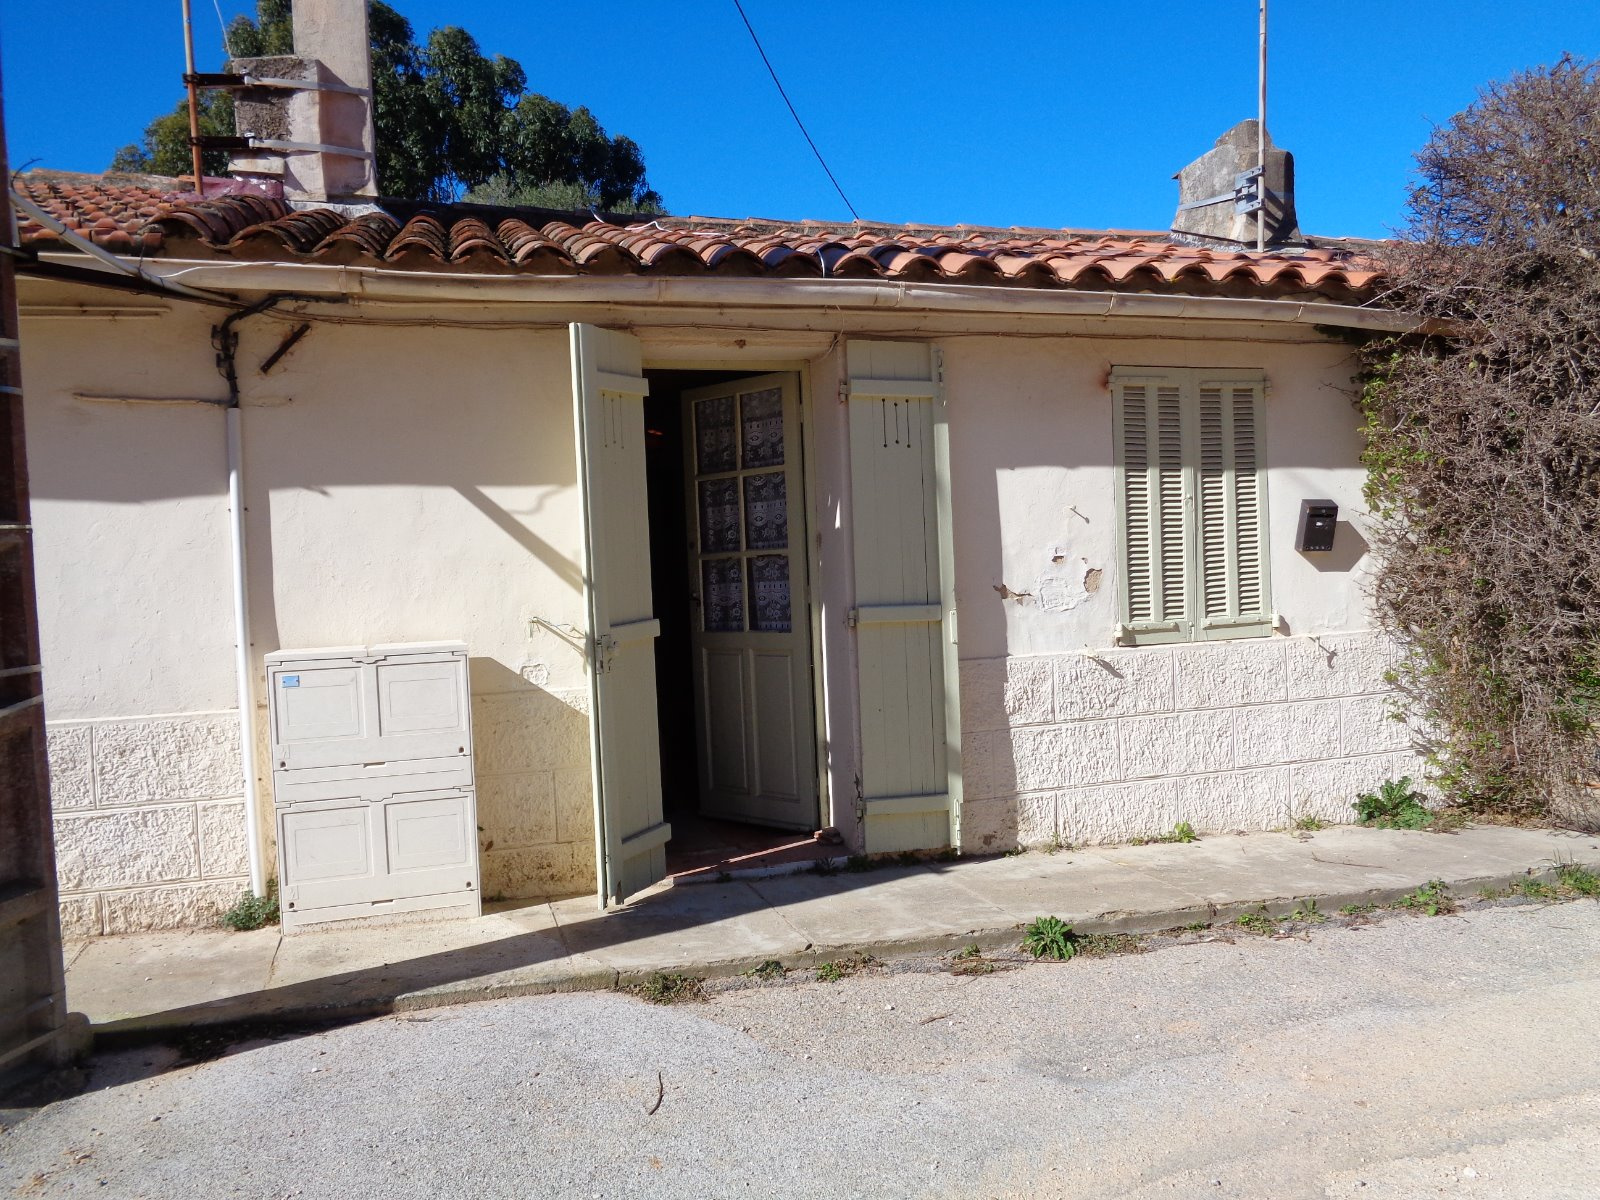 Vente maison a porquerolles exclusivite vendu for Maison appartement